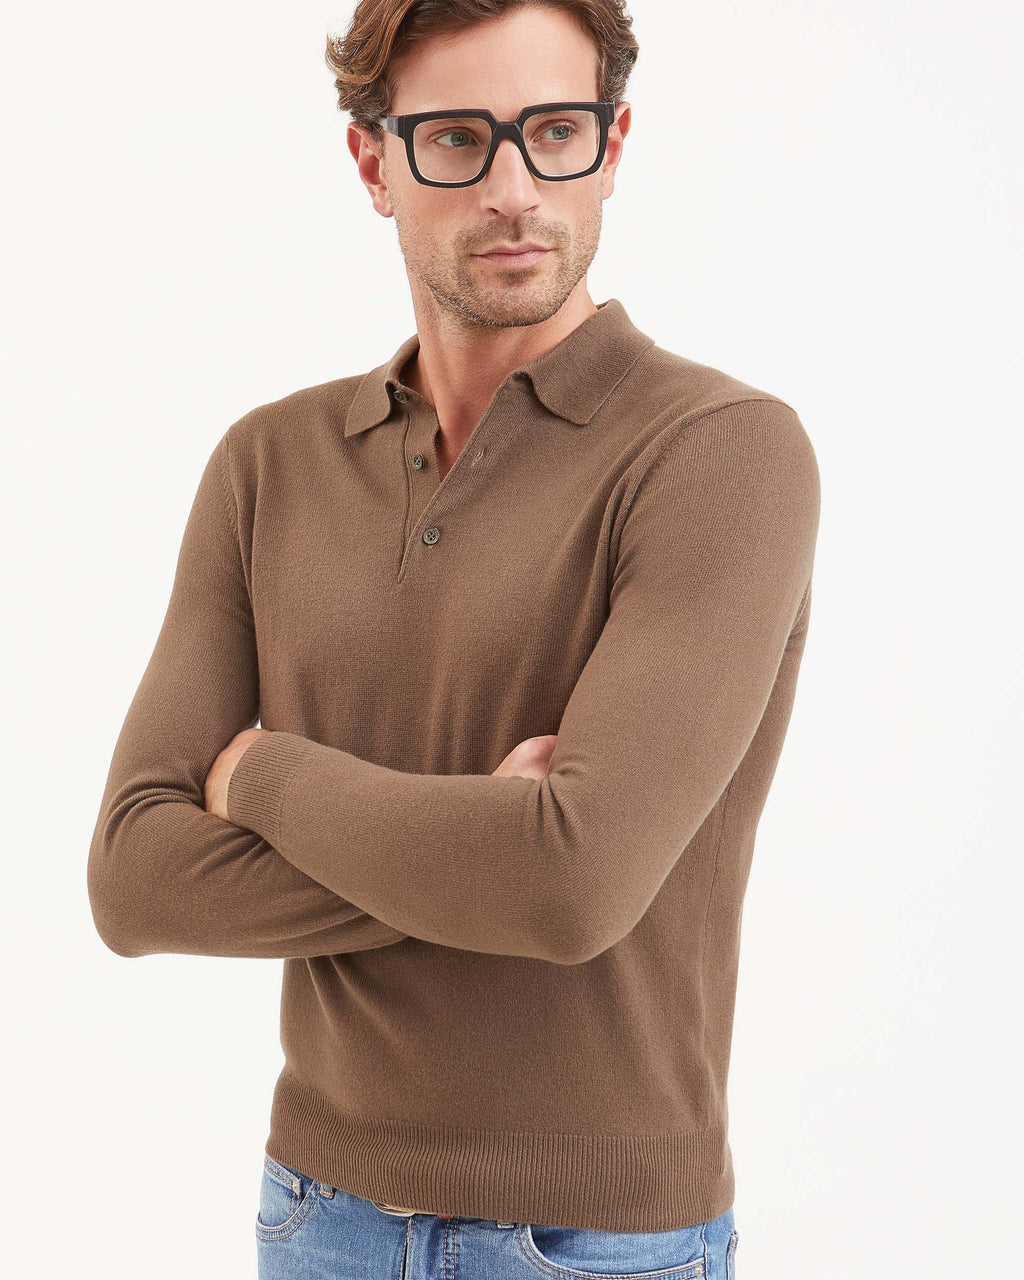 Mens Brown cashmere polo shirt with long sleeves